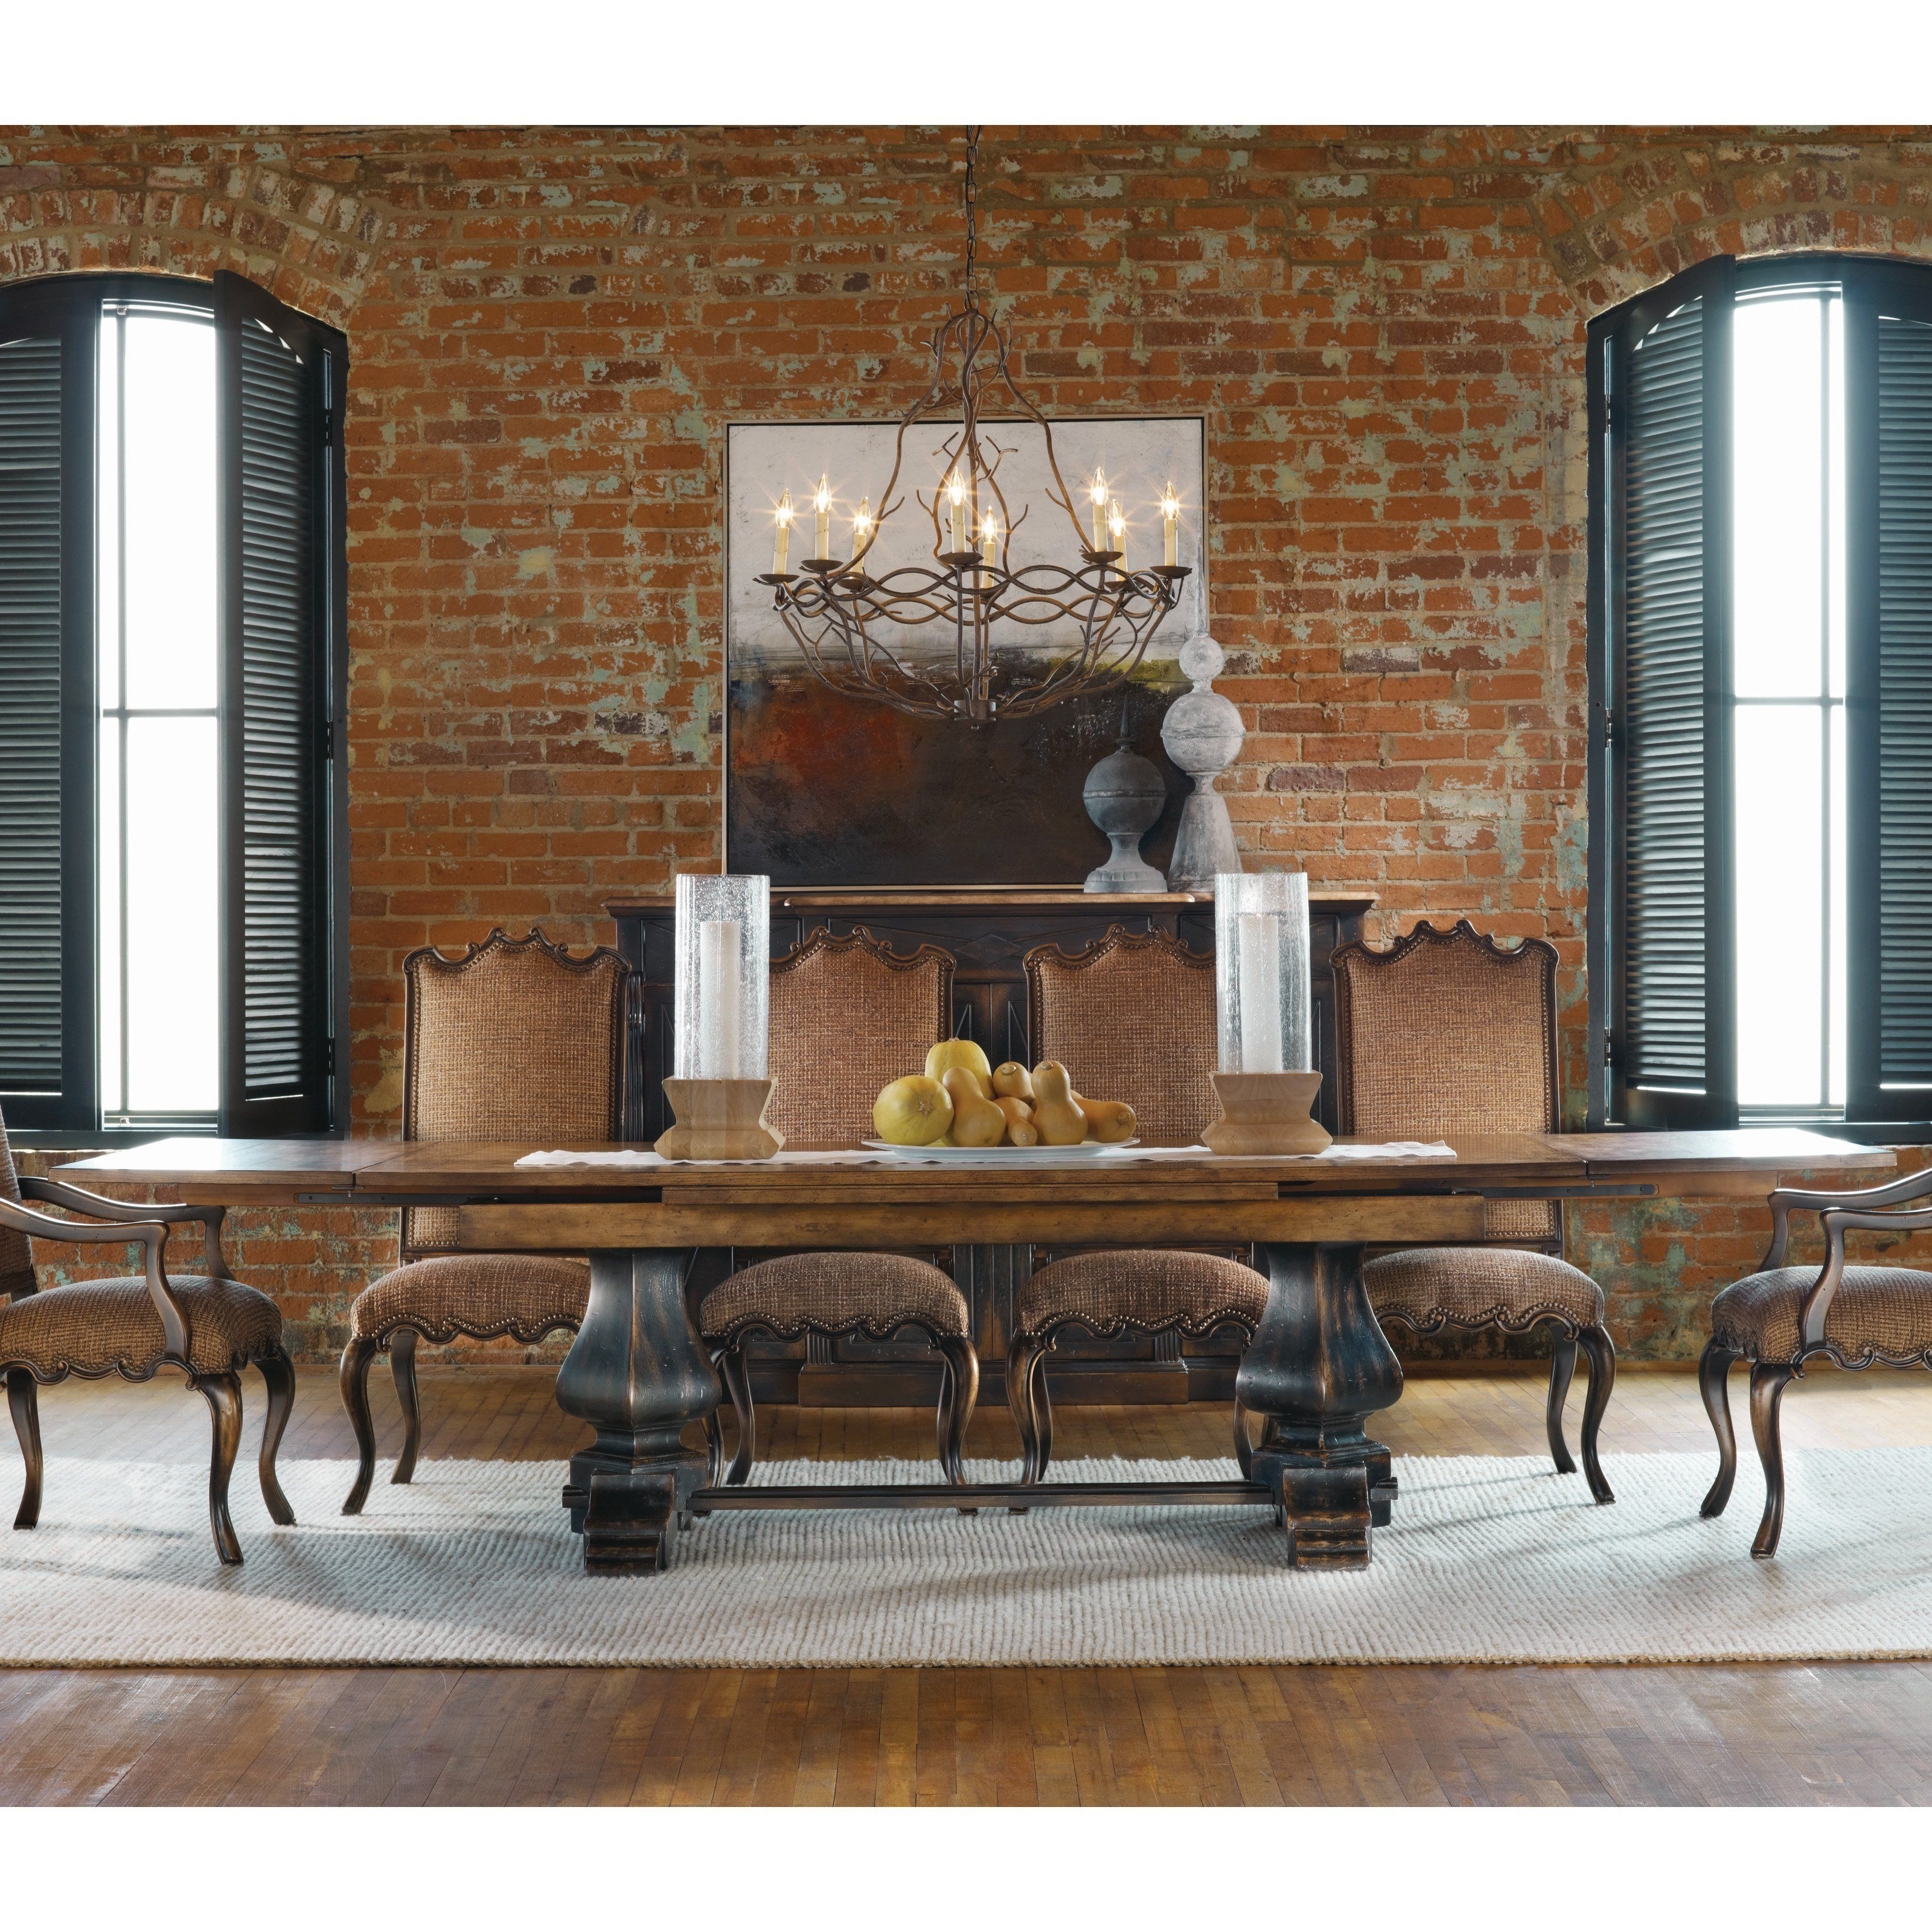 Etonnant Hooker Furniture Sanctuary Refectory Trestle Dining Table   Ebony U0026 Drift